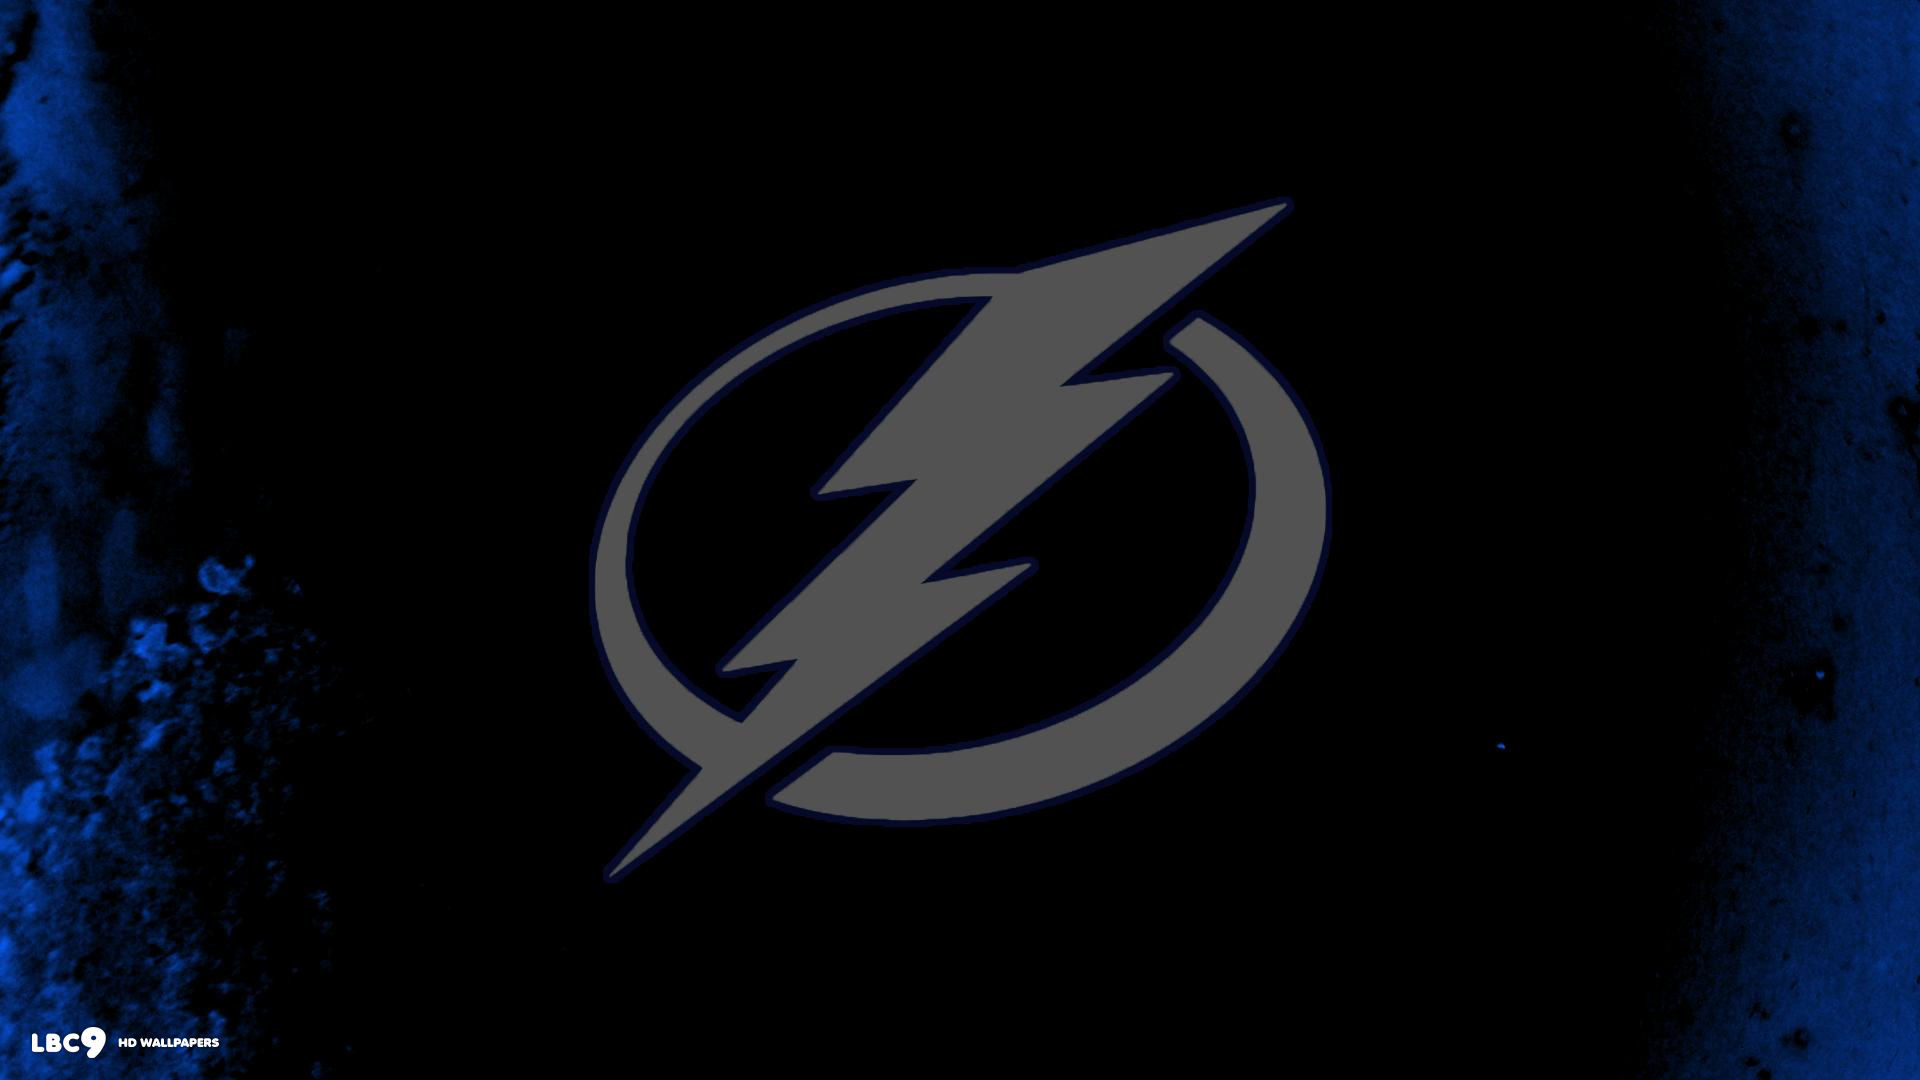 1920x1080  px Cool HQ Definition of Tampa Bay Lightning Wallpapers, Full HD  1080p Desktop Wallpapers